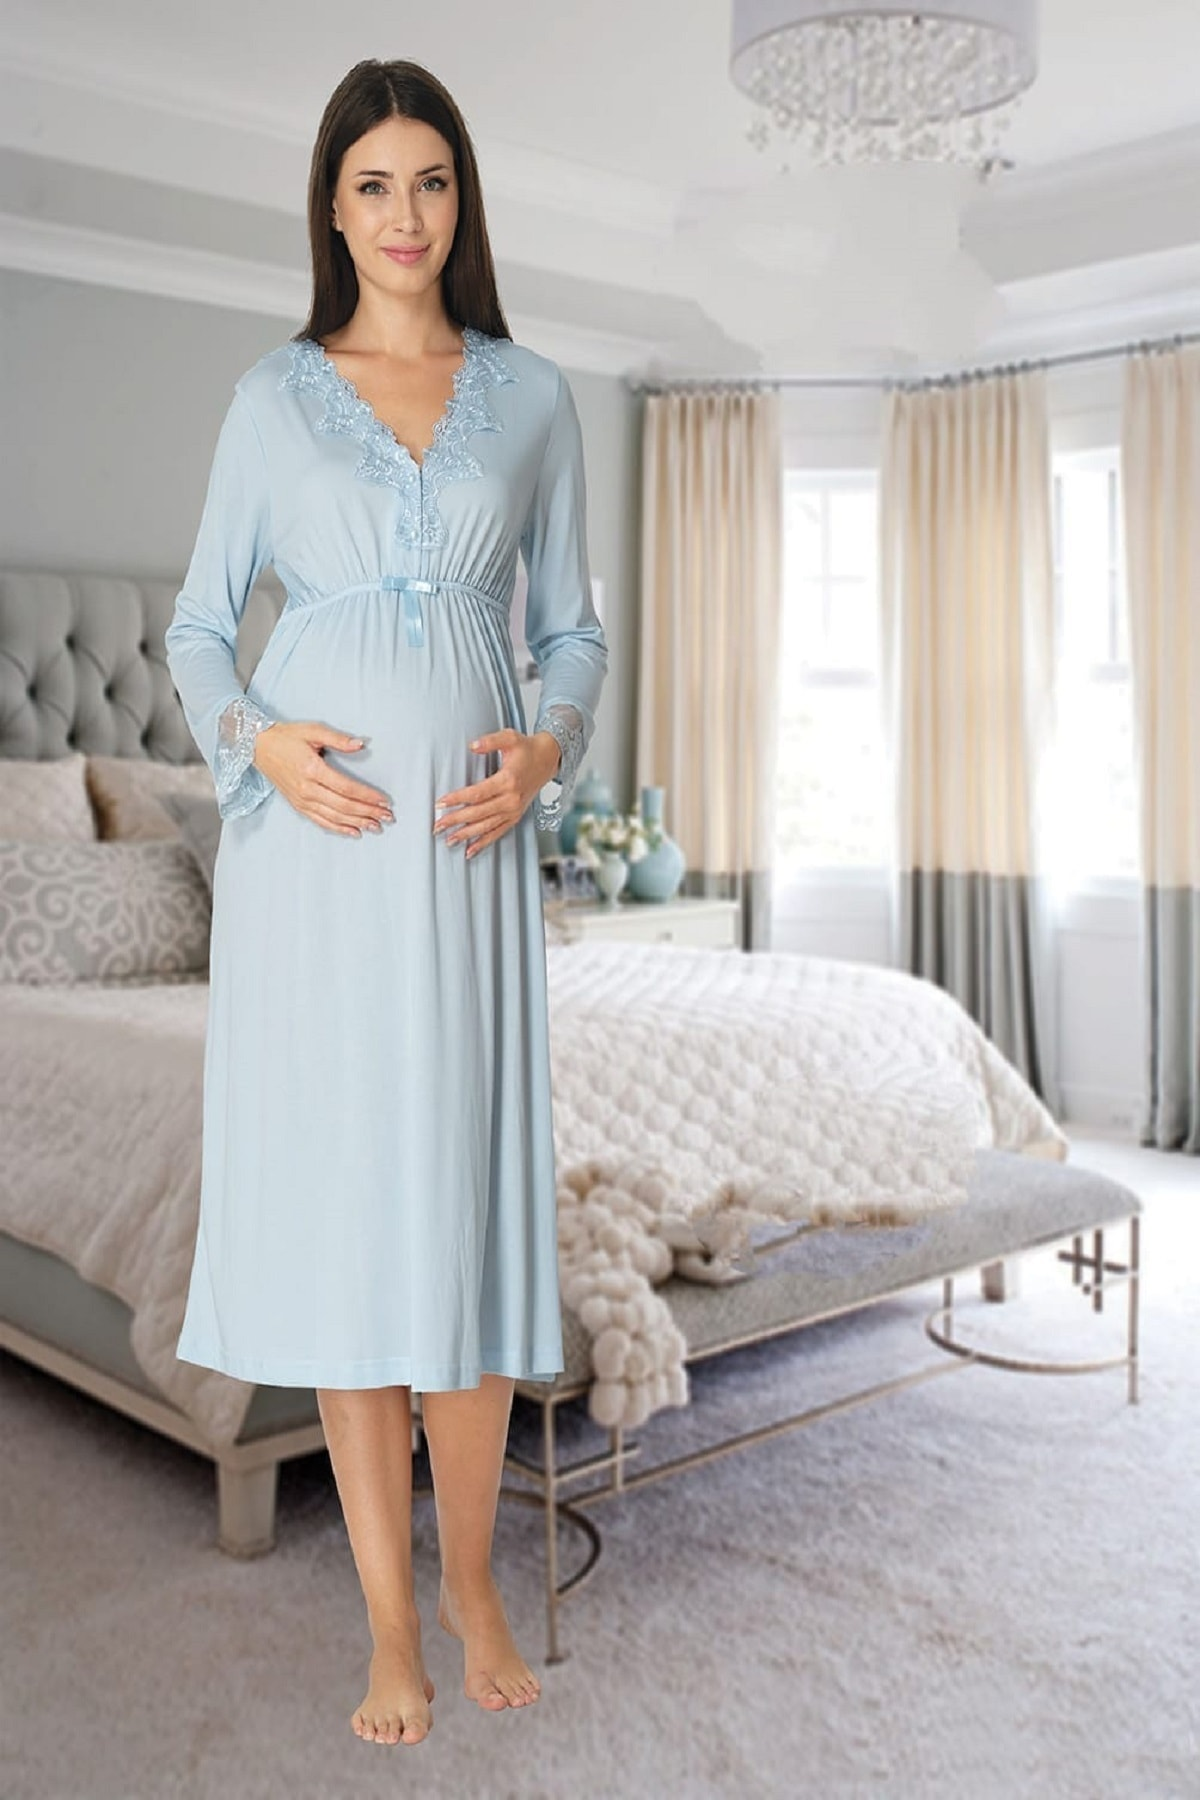 Women's Blue Long-Sleeve Pajamas Set Nightgown Dressing Gown Puerperal Maternity 4'lü Set enlarge